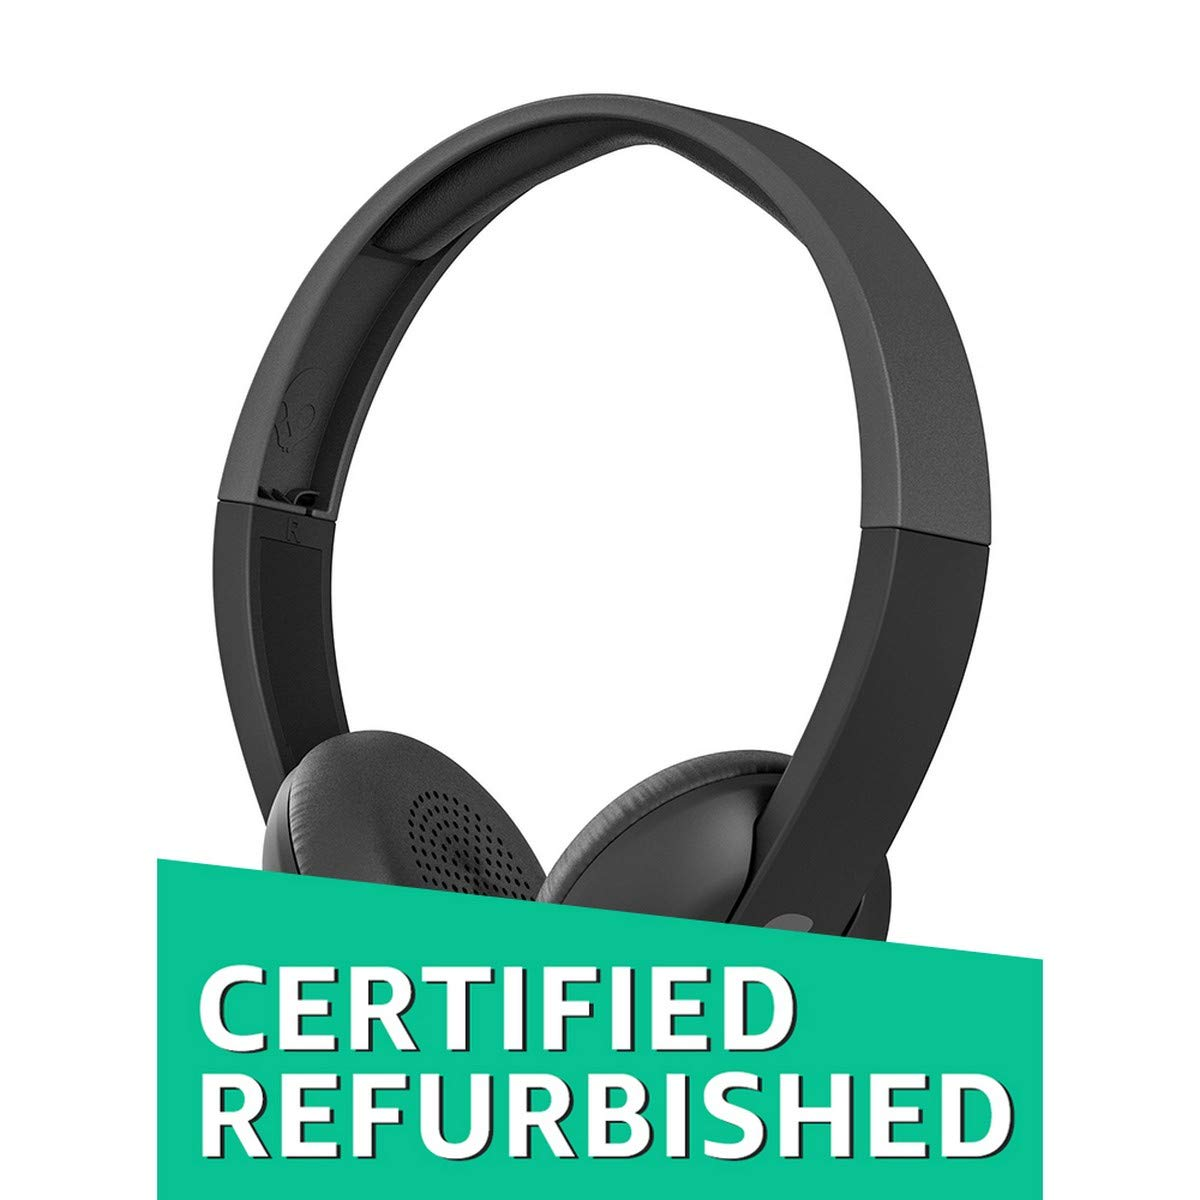 (Certified REFURBISHED) Skullcandy S5URHW-509 On-Ear